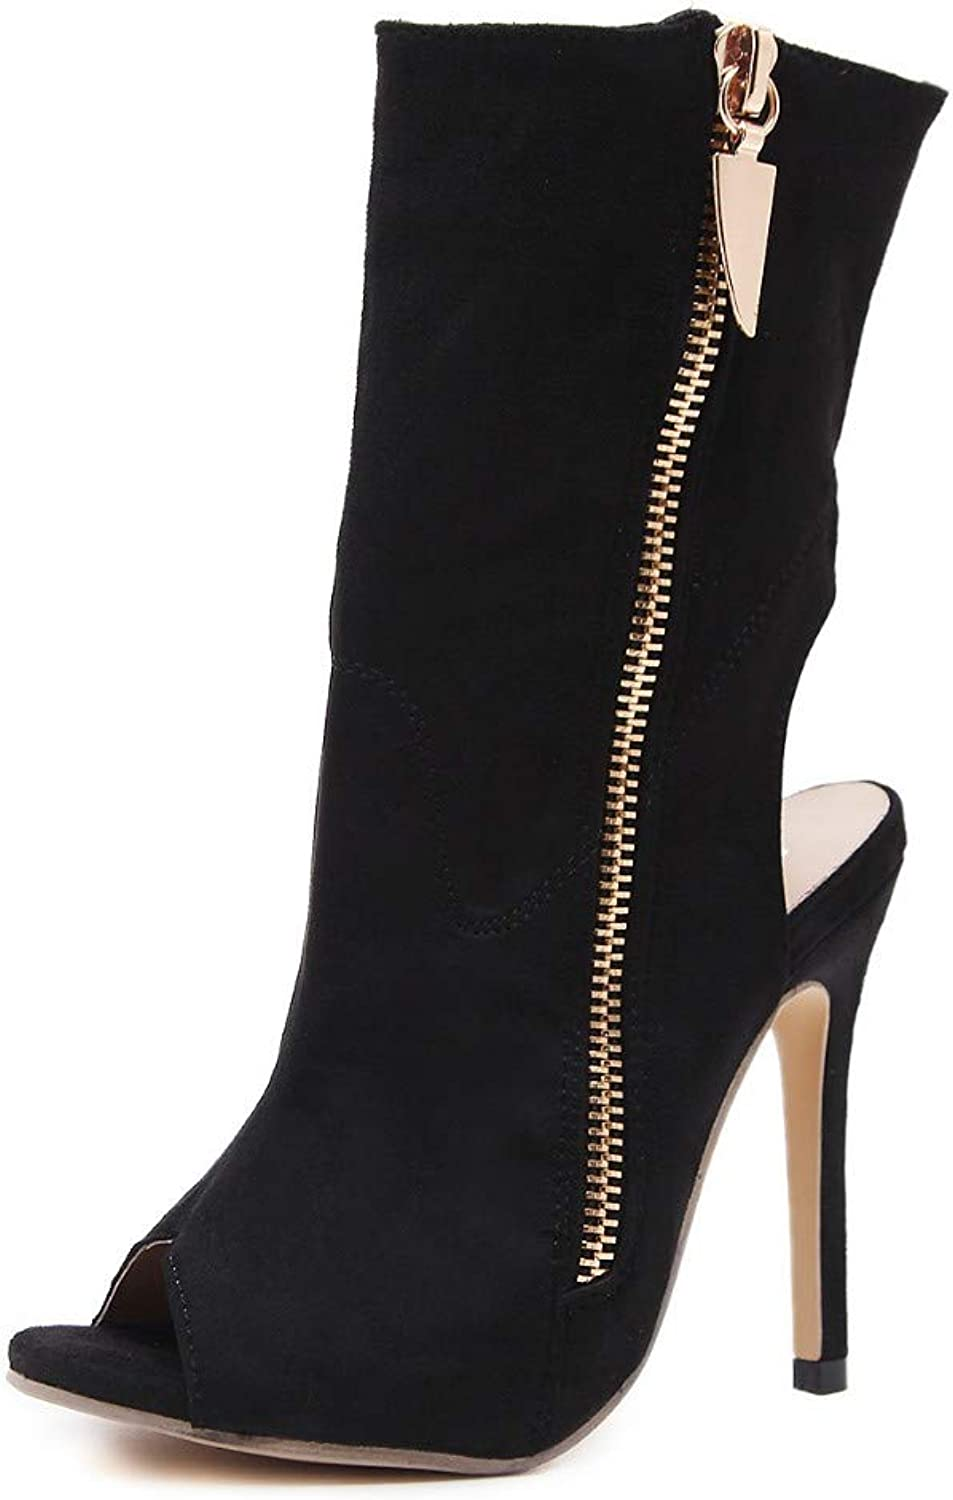 JQfashion Women's High-Heeled shoes with Fine Feet in Spring and Summer